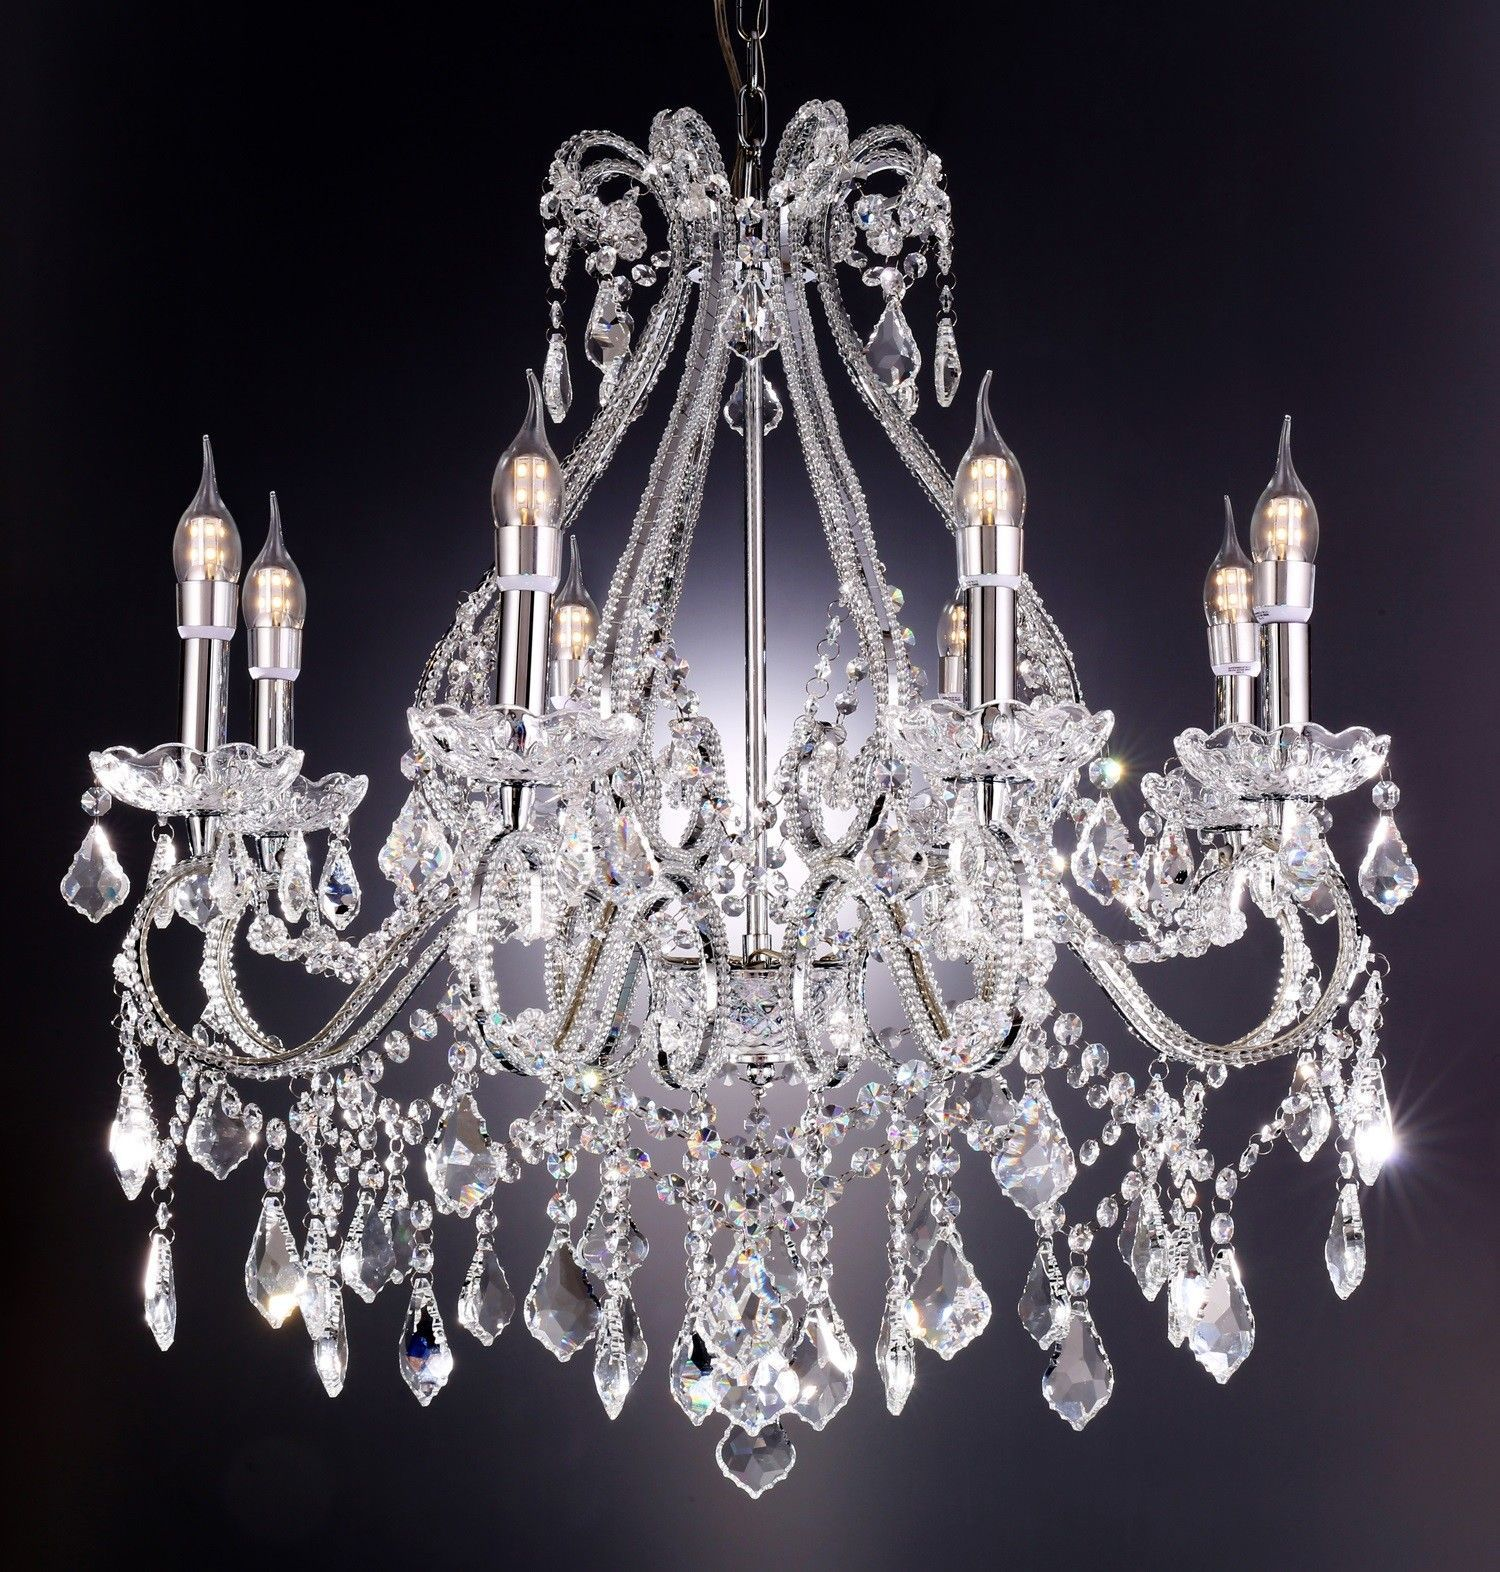 Nola light crystal chandelier candle chandelier chandeliers and